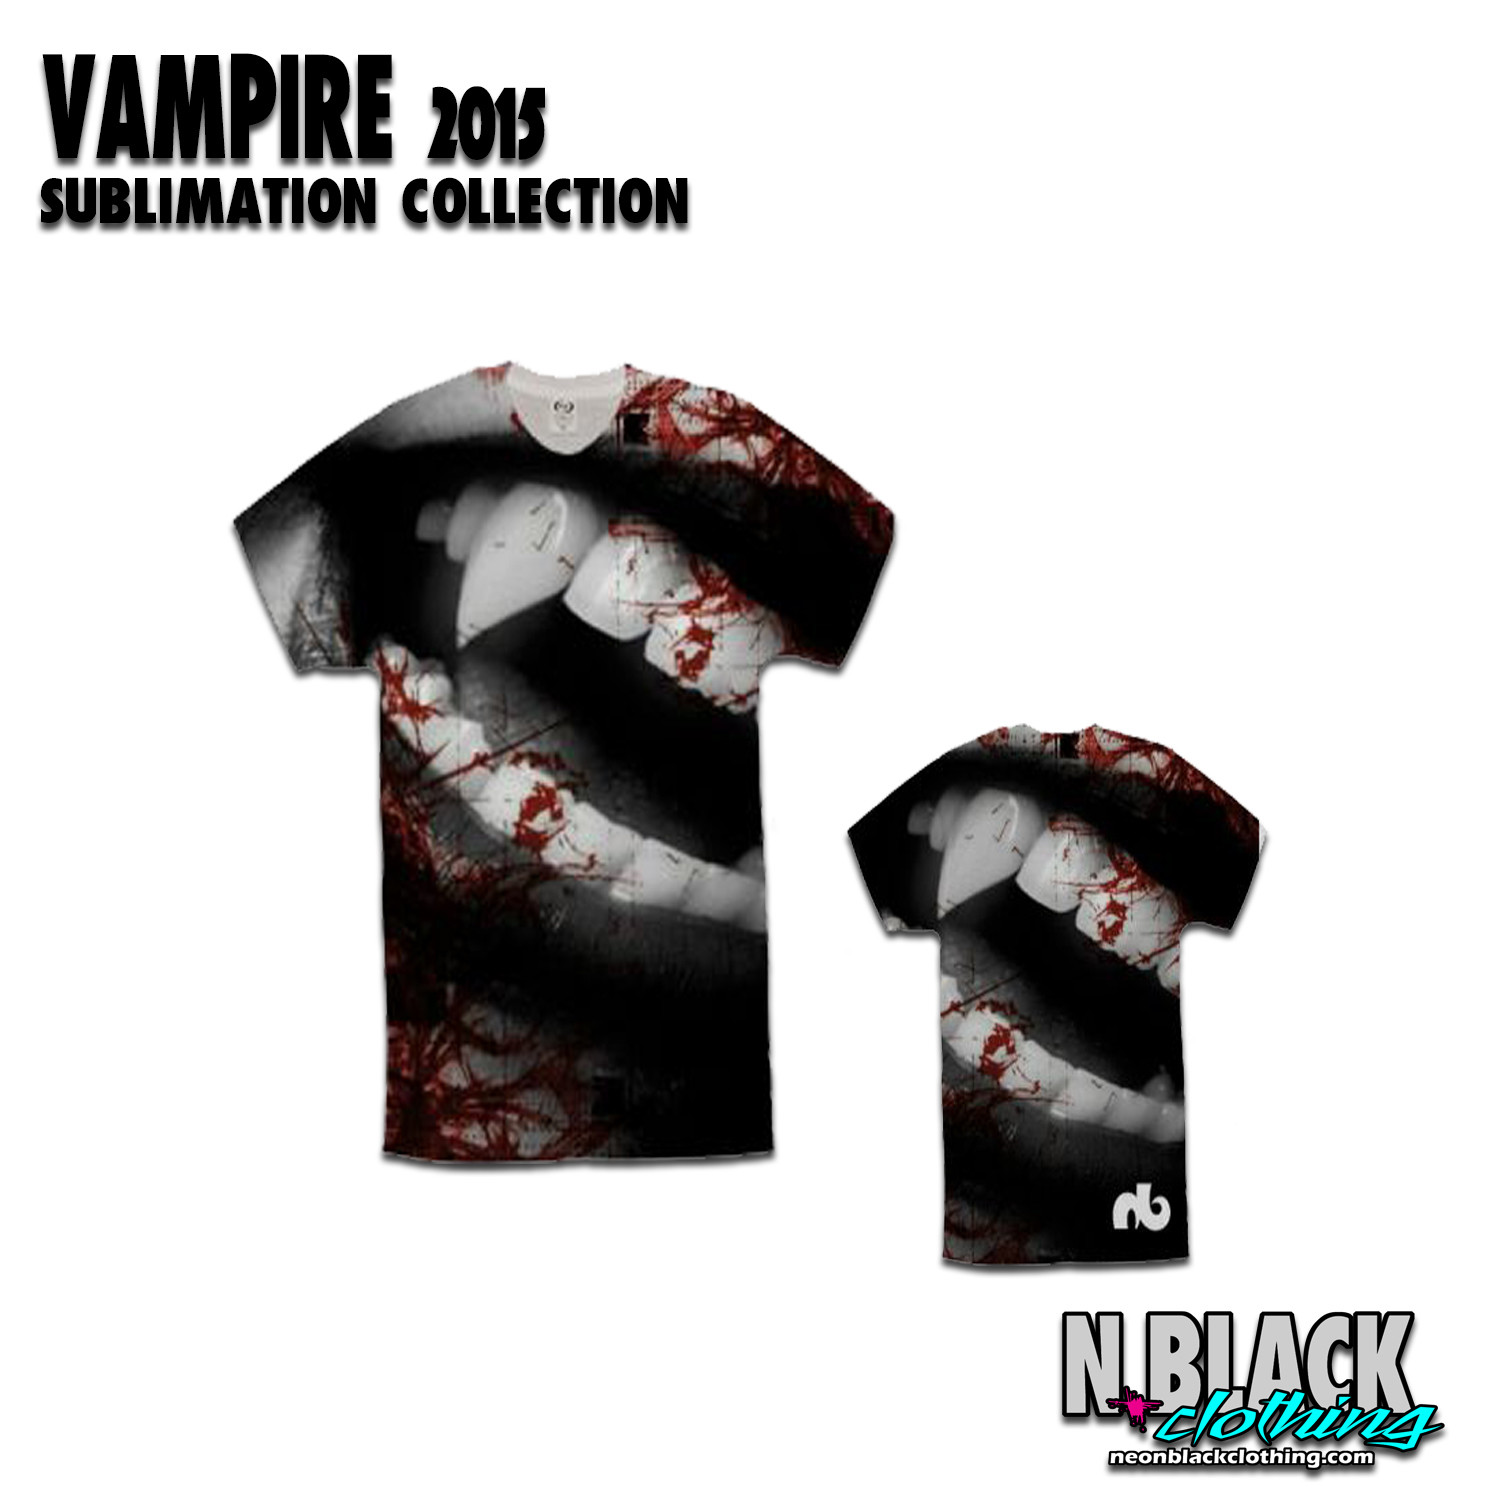 Vampire 2015 - Sublimation Collection #1.5